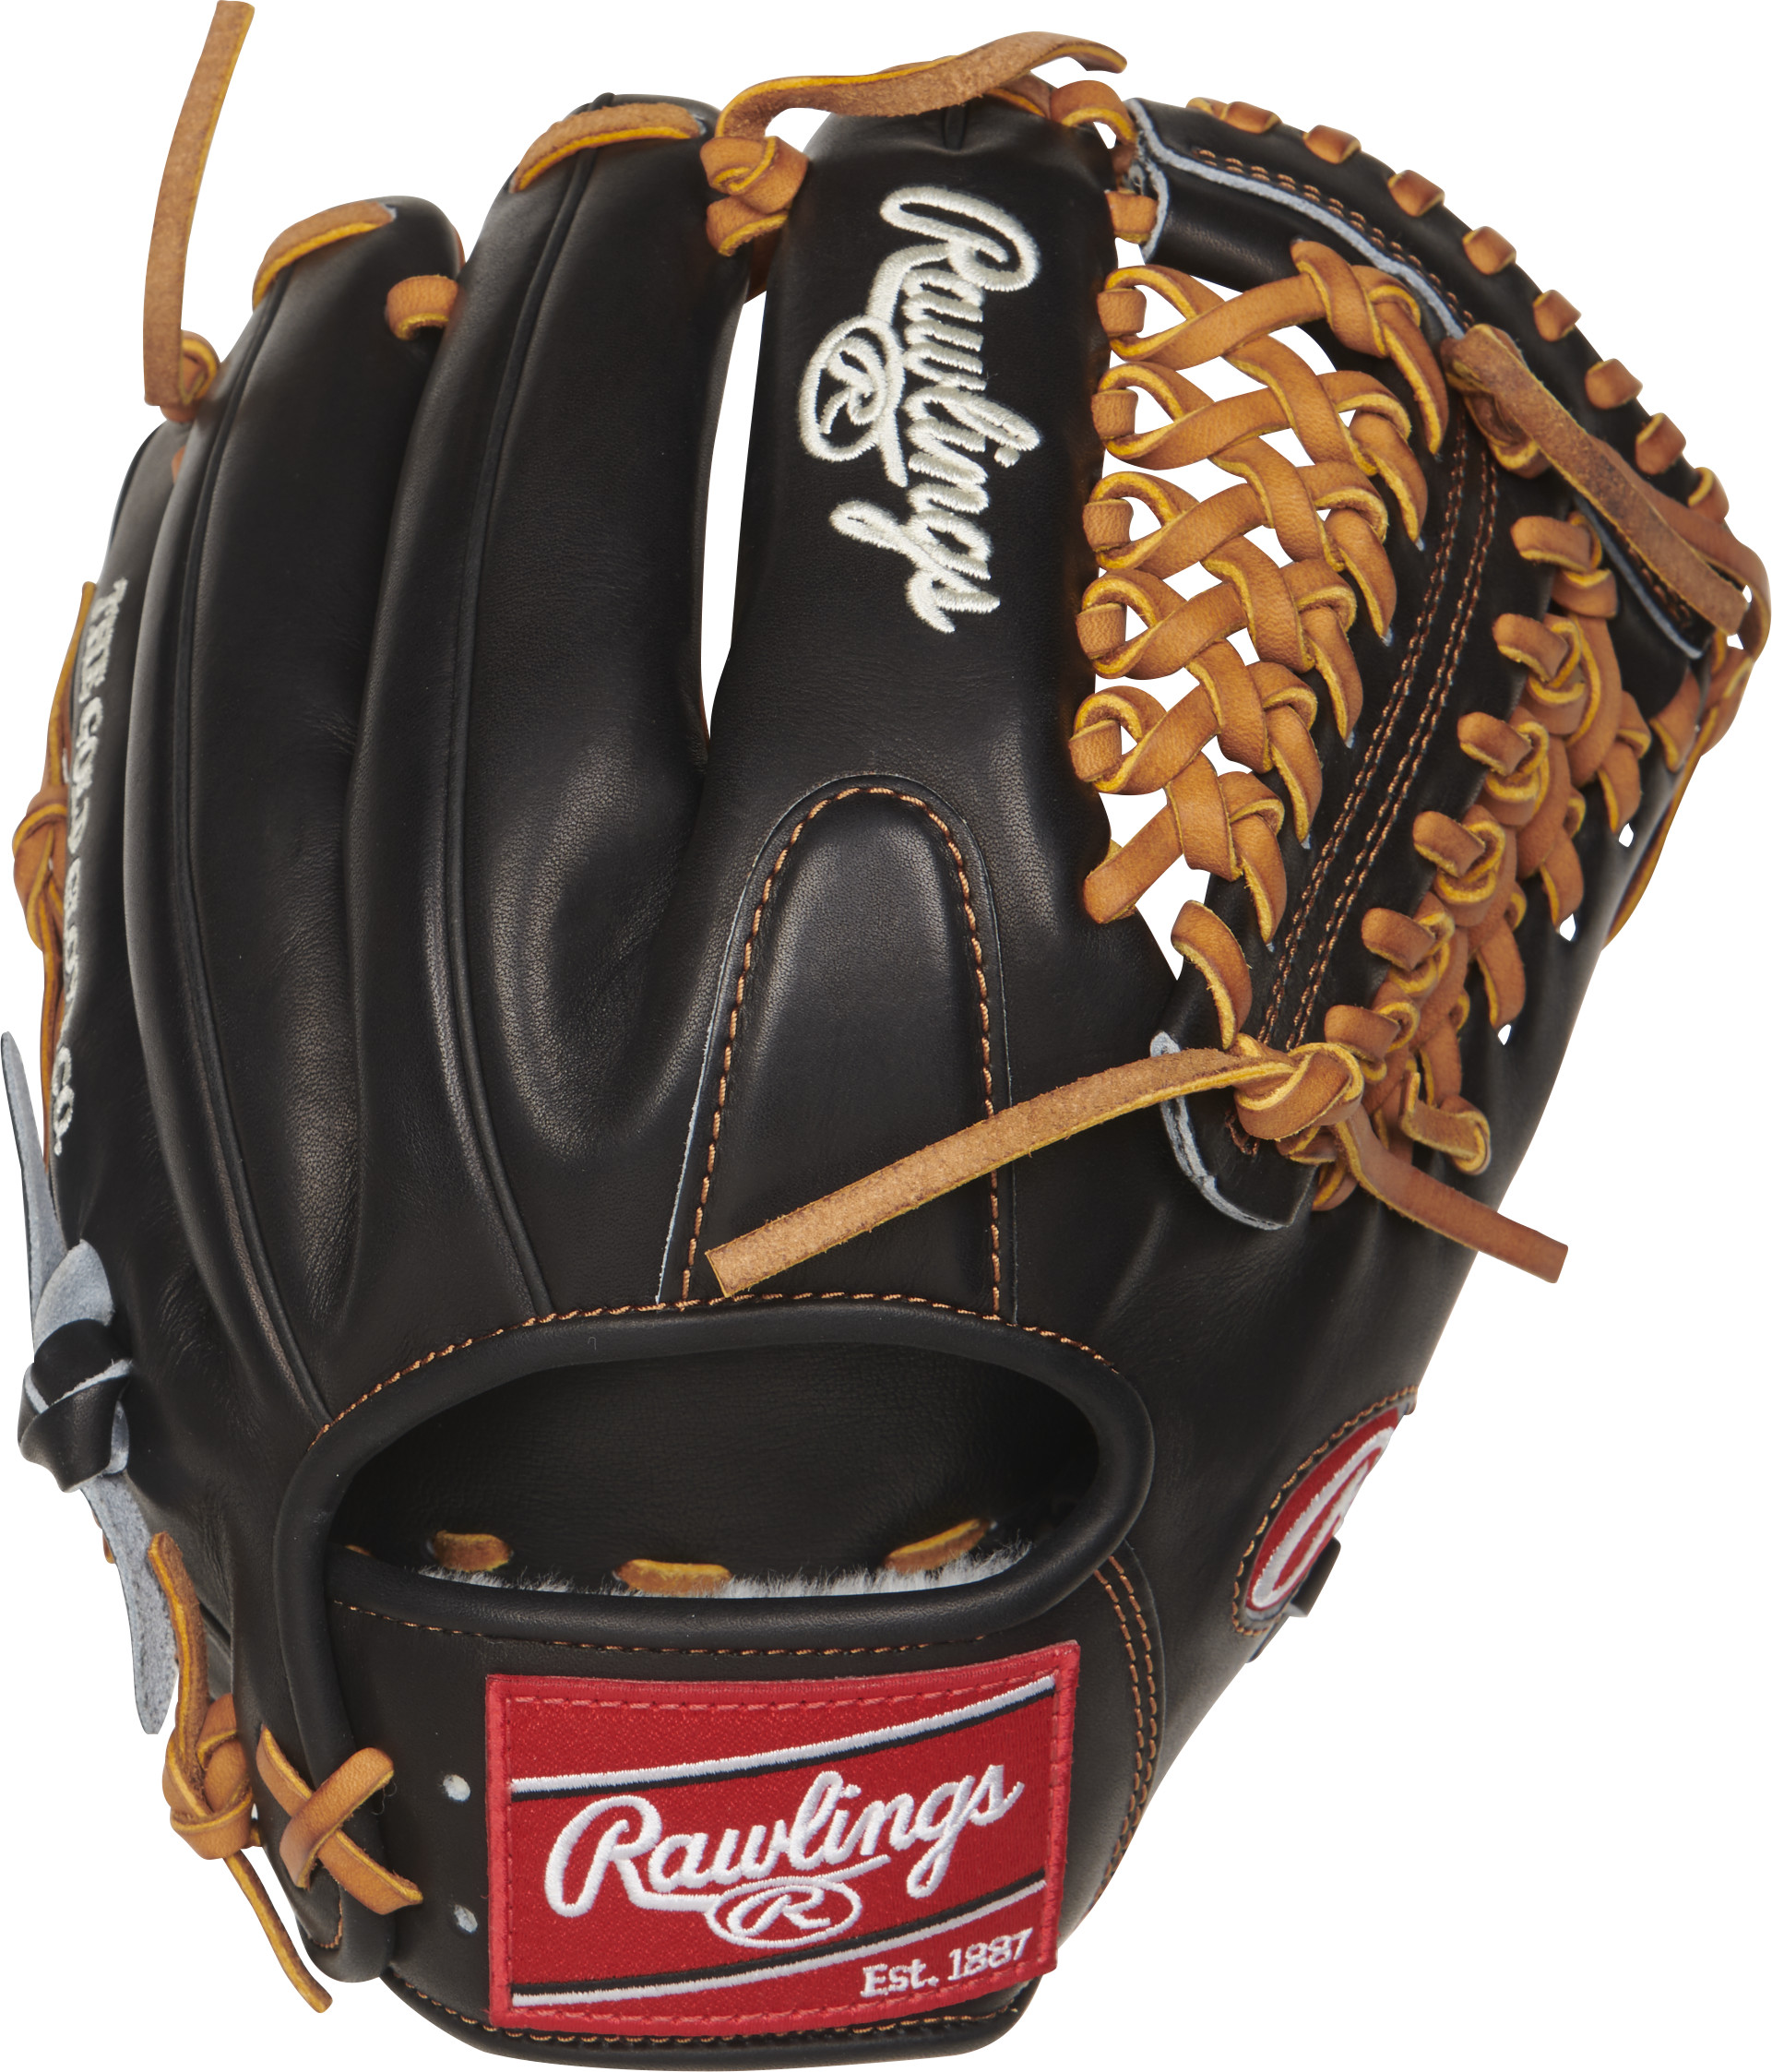 http://www.bestbatdeals.com/images/gloves/rawlings/PROS205-4CBT-2.jpg